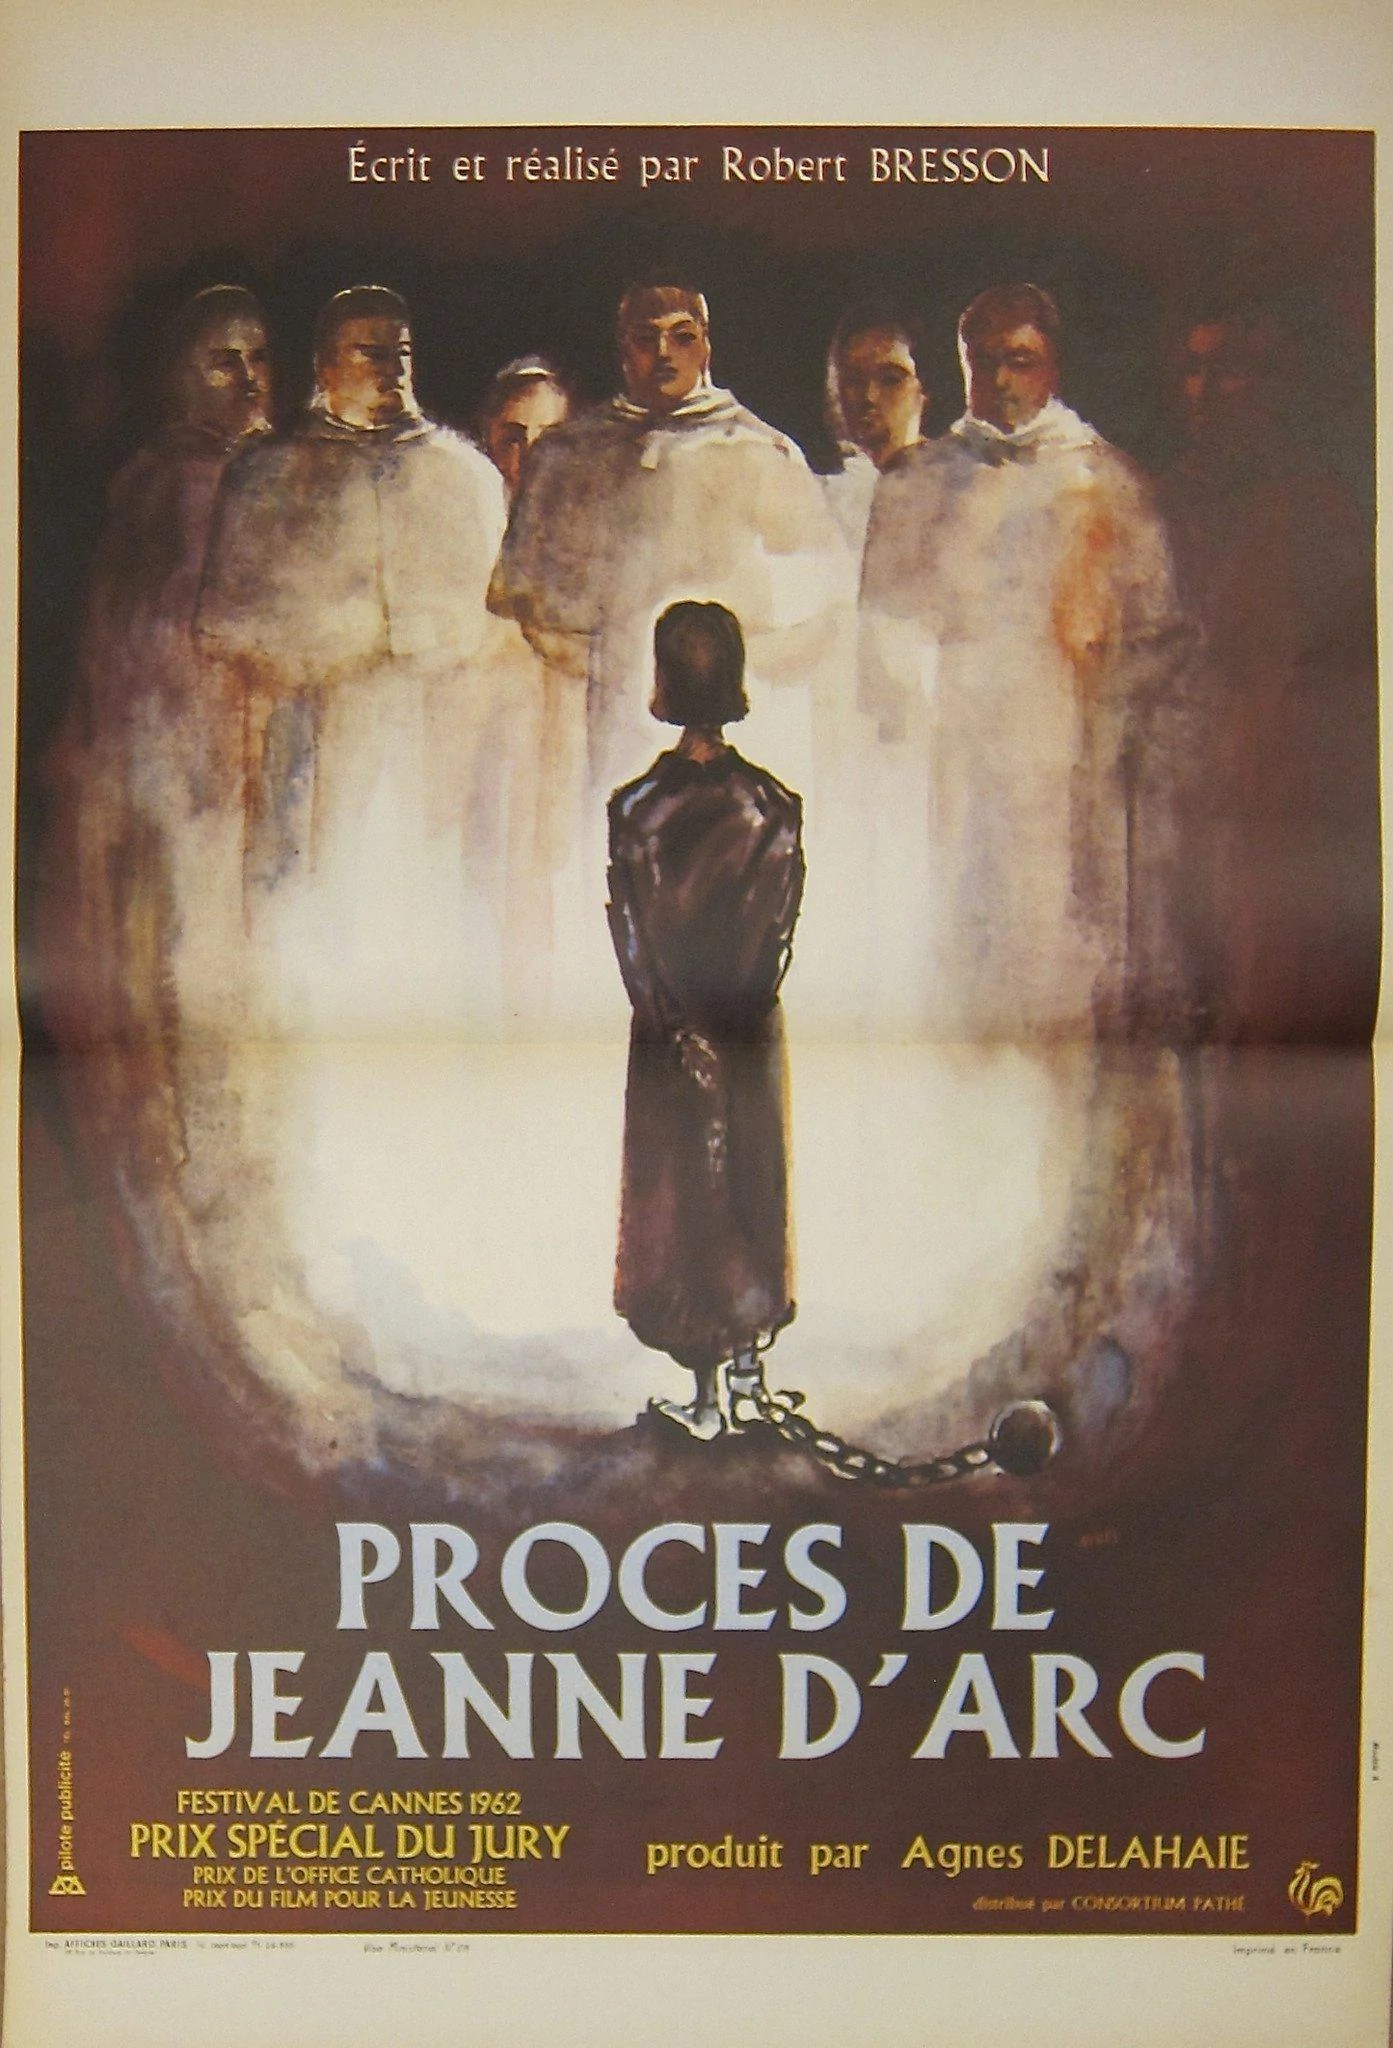 Le Procès De Jeanne D Arc : procès, jeanne, Trial, (Proces, Jeanne, D'Arc), Movie, Poster, French, (16x23), Original, Vintage